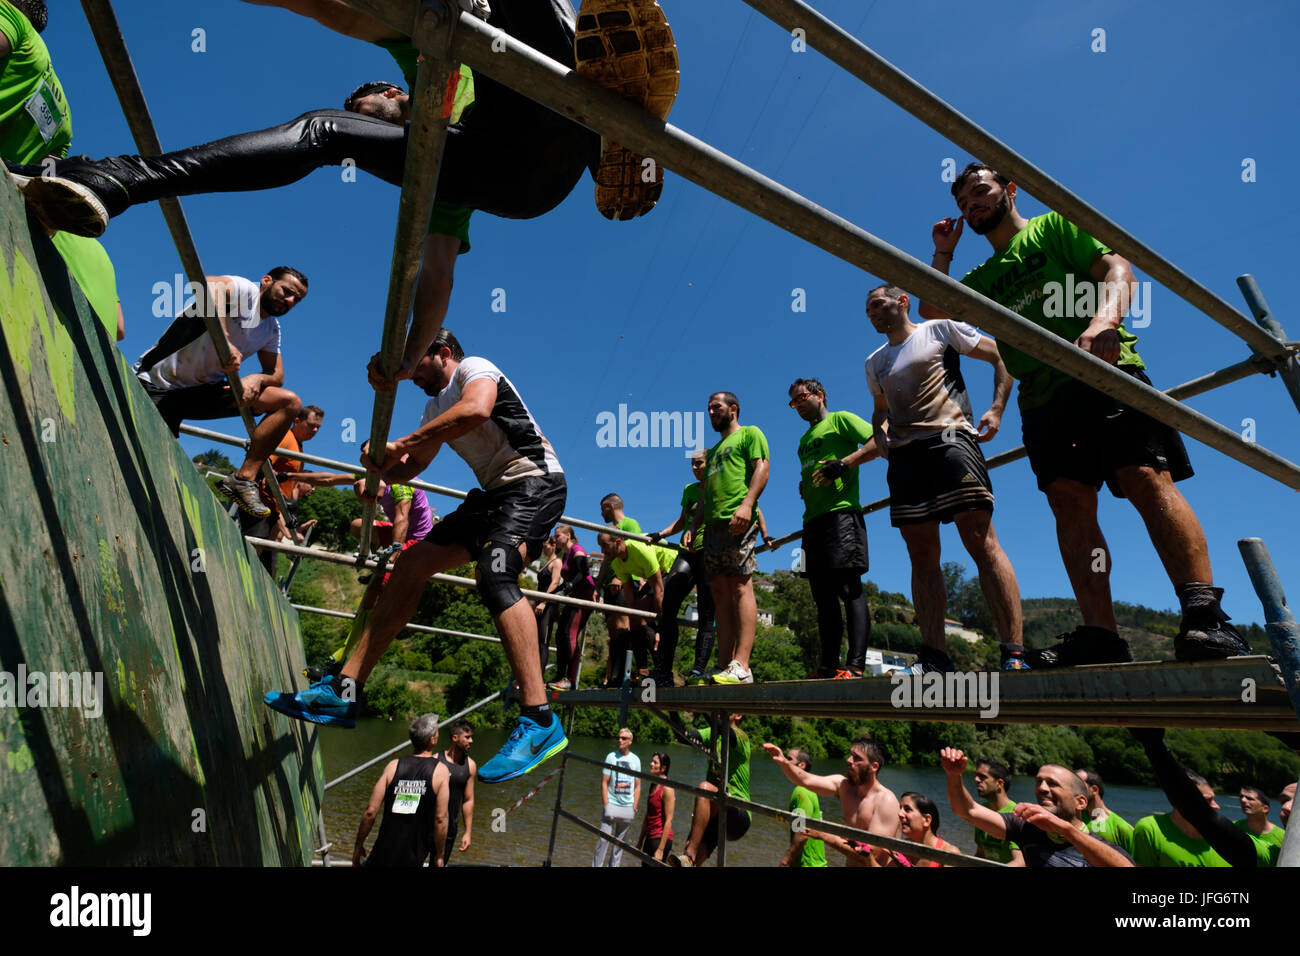 Athletes participating on an obstacle course race - Stock Image